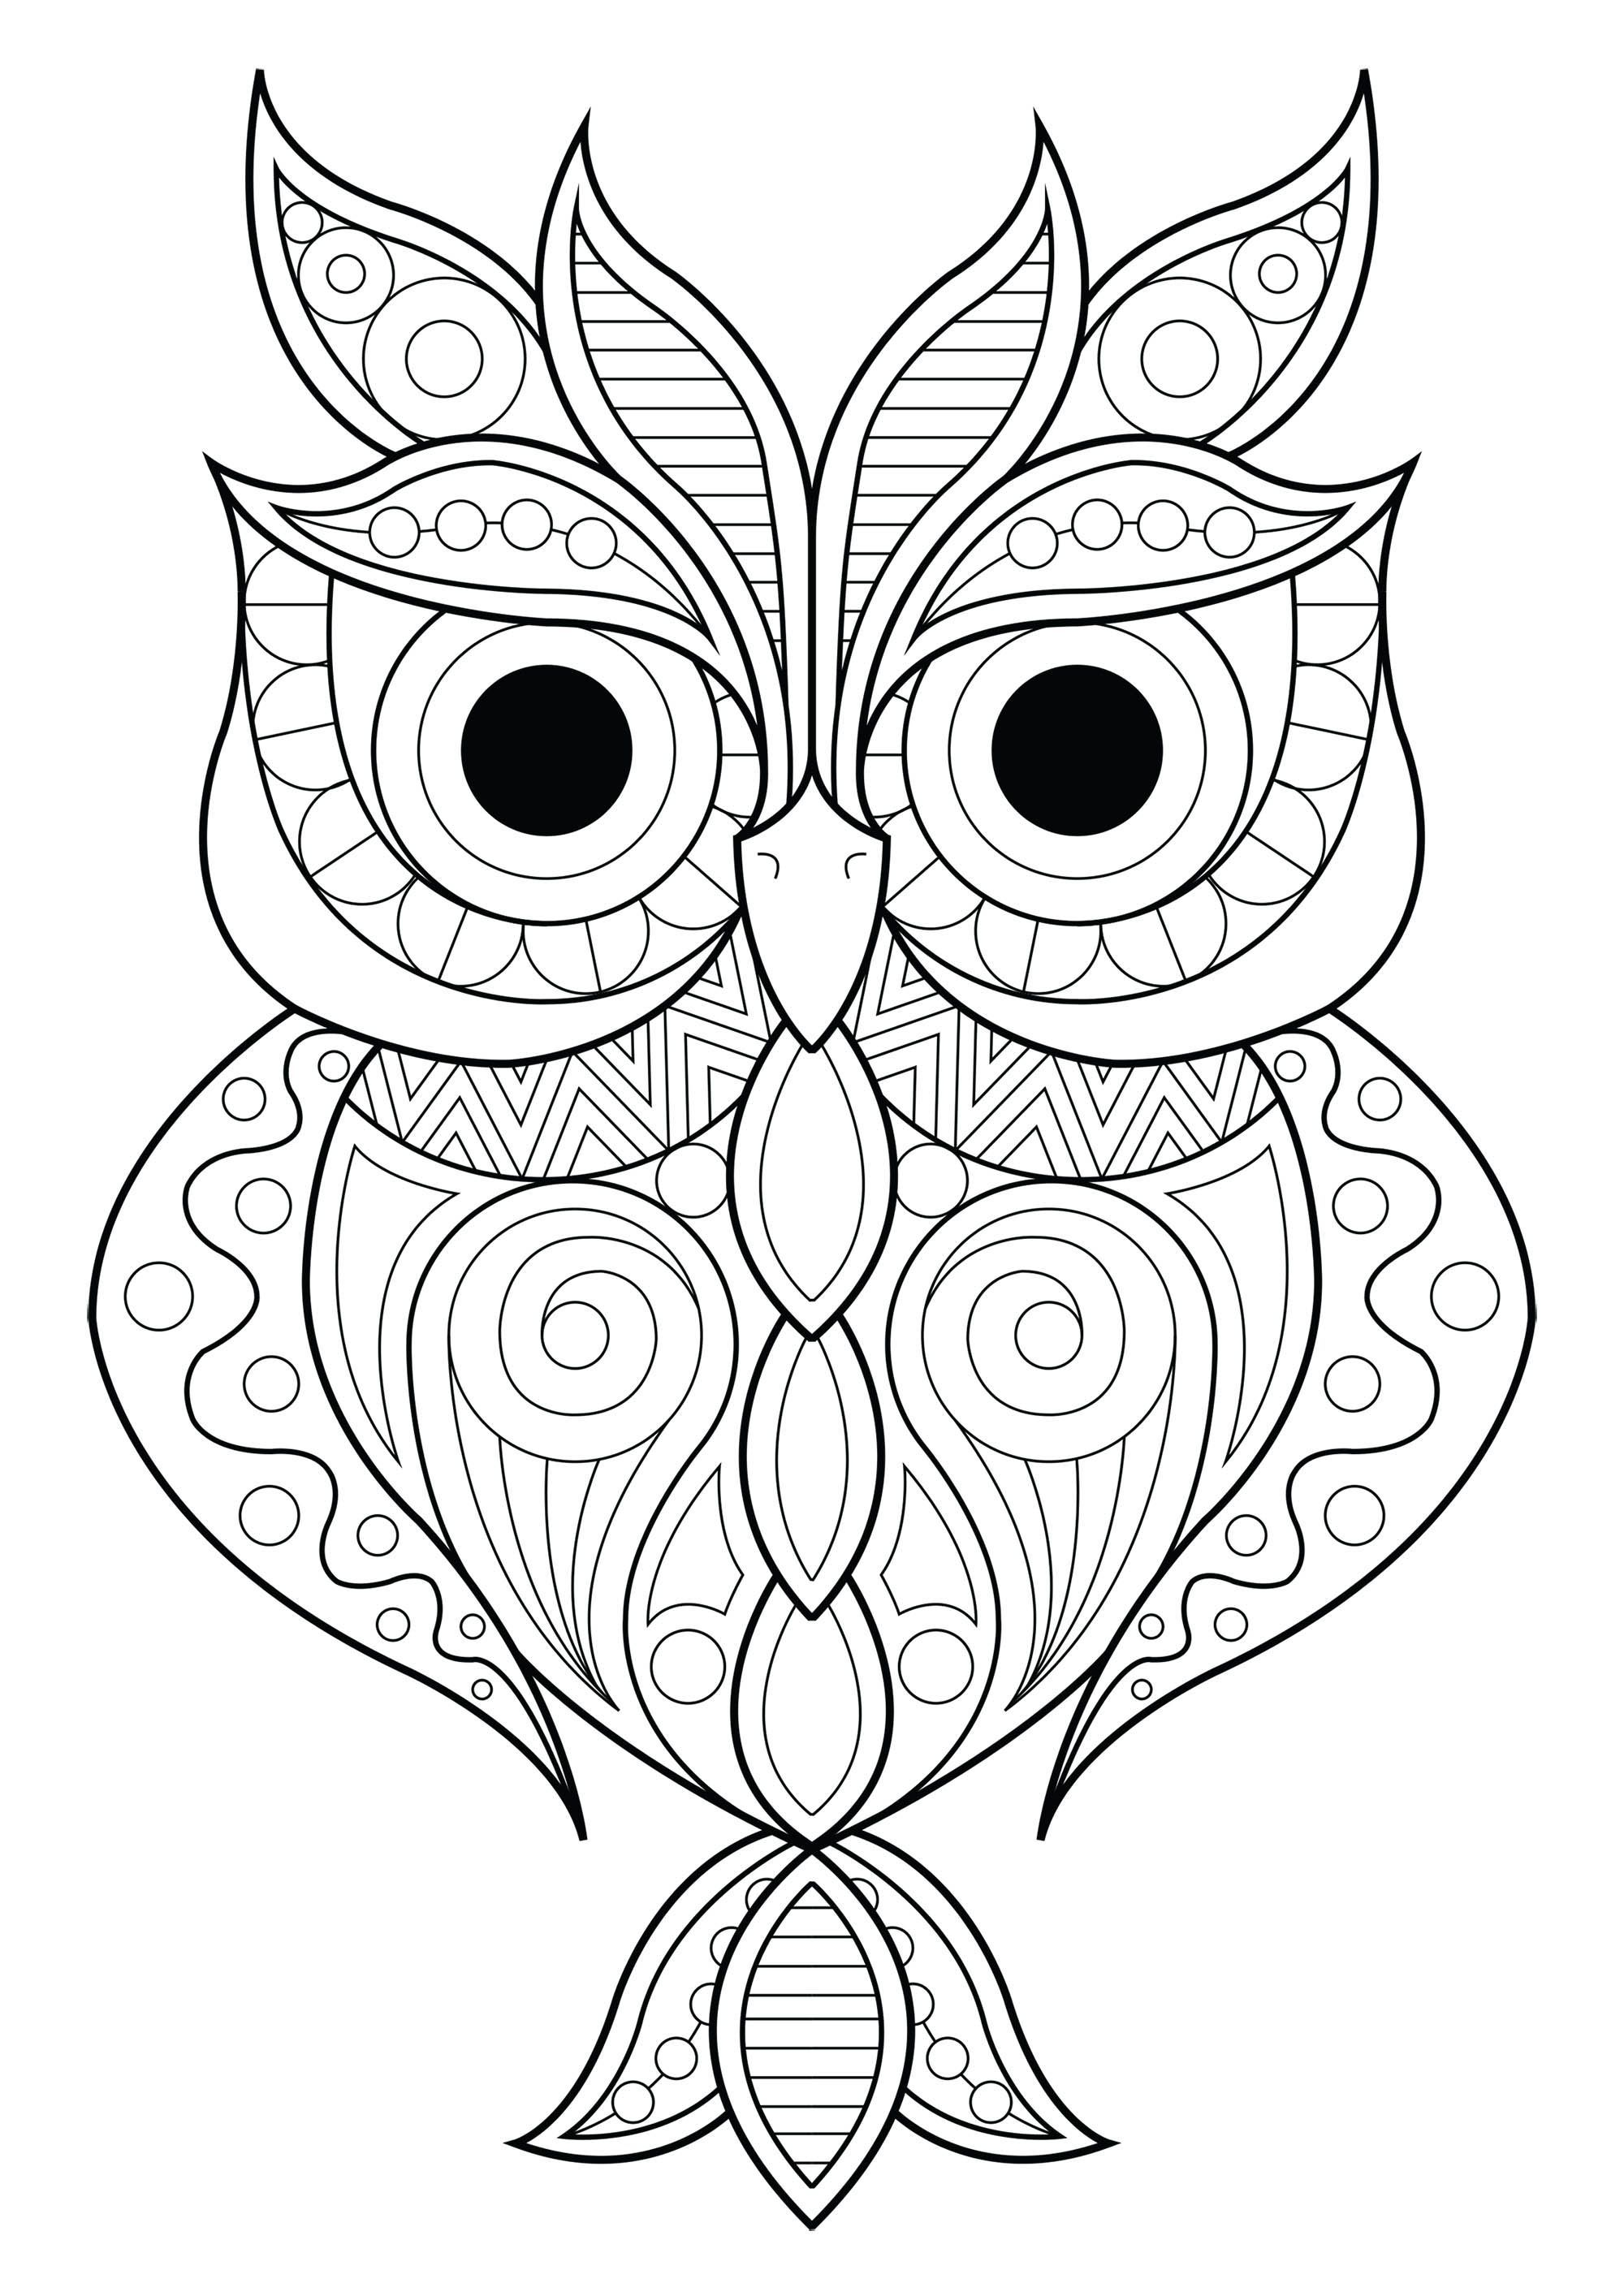 Owl Simple Patterns 2 Owl With Various Different Patterns From The Gallery Owls Artist Animal Coloring Pages Owl Coloring Pages Mandala Coloring Pages